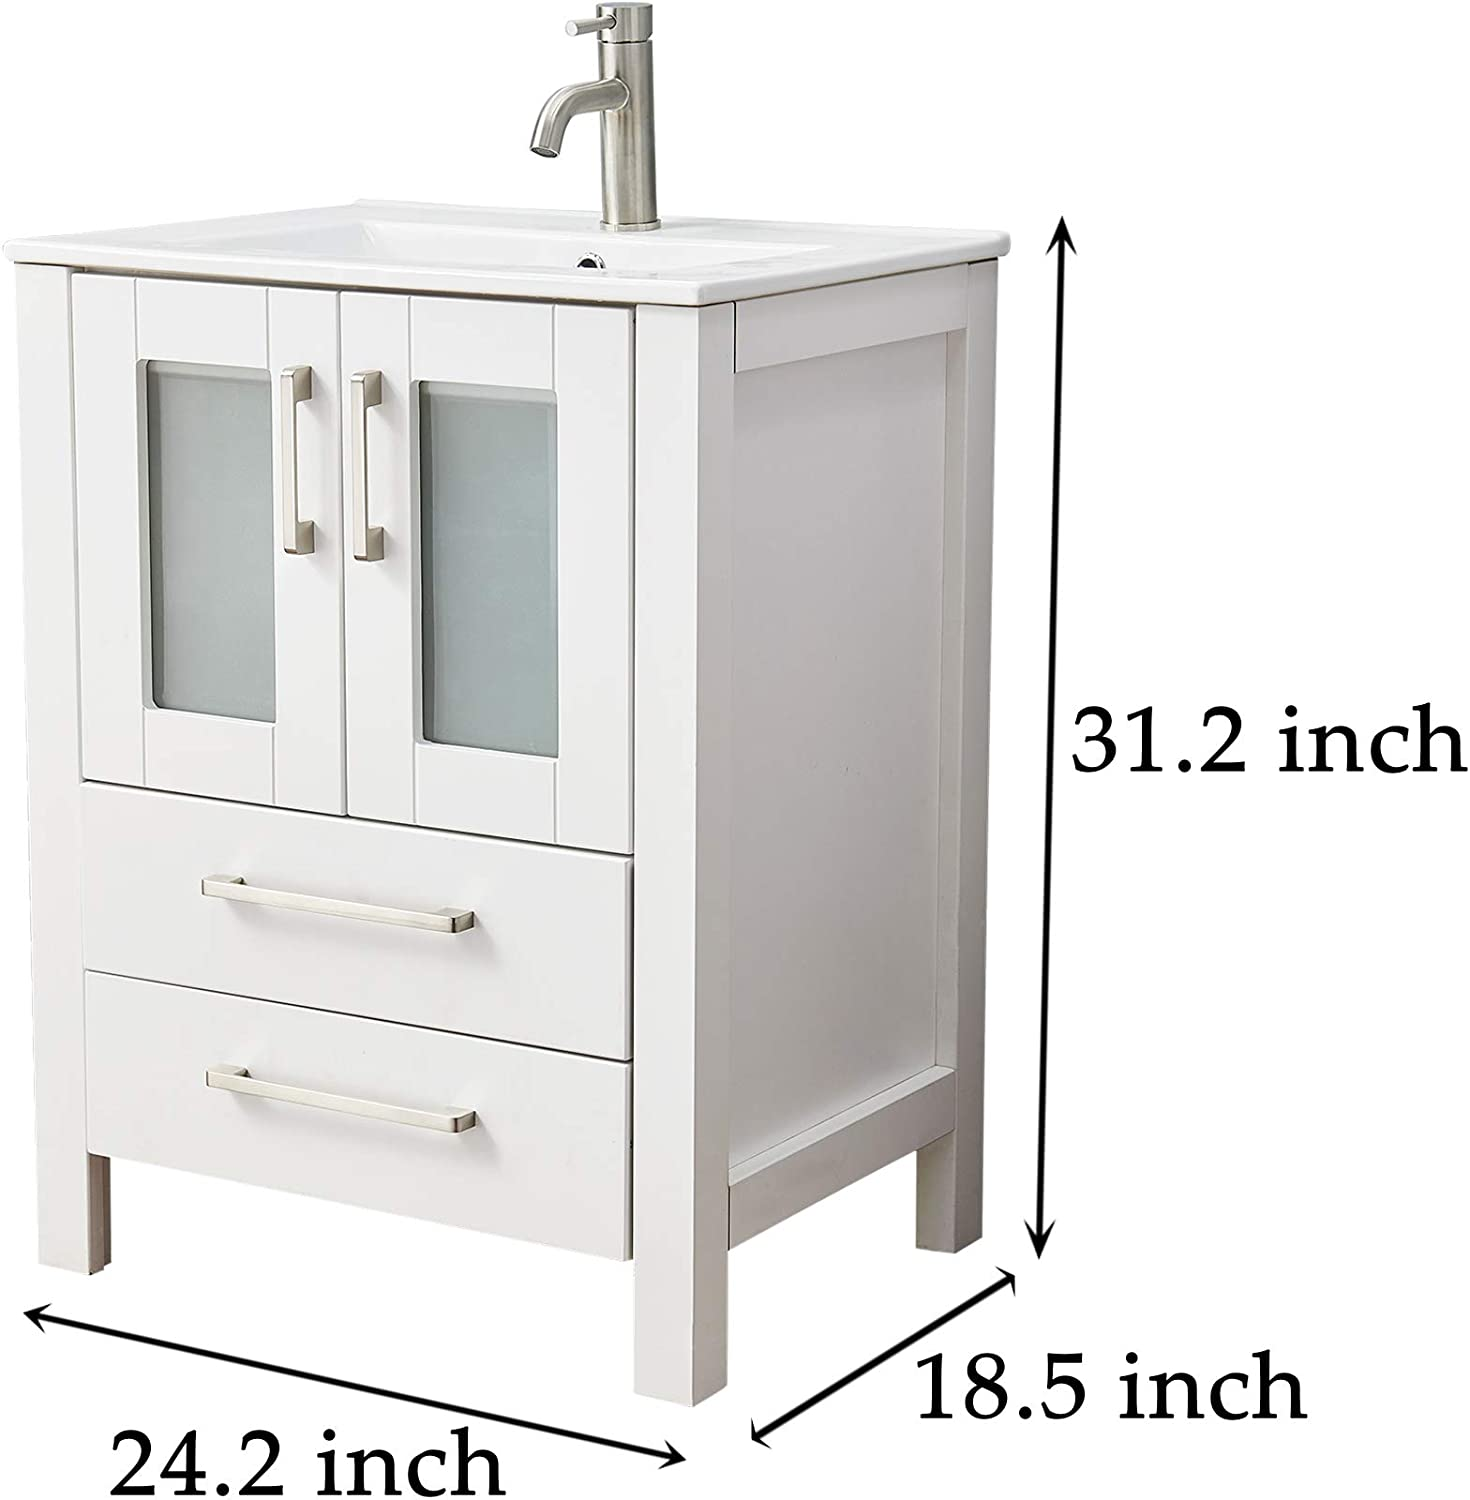 Stand Double Drawer Two Soft Closing Door Bath Vanity Cabinet Set With Brushed Nickel Handle With Ceramic Sink For Medium And Small Space Modern White 24 Inch Bathroom Vanity Combo Bathroom Fixtures Kitchen